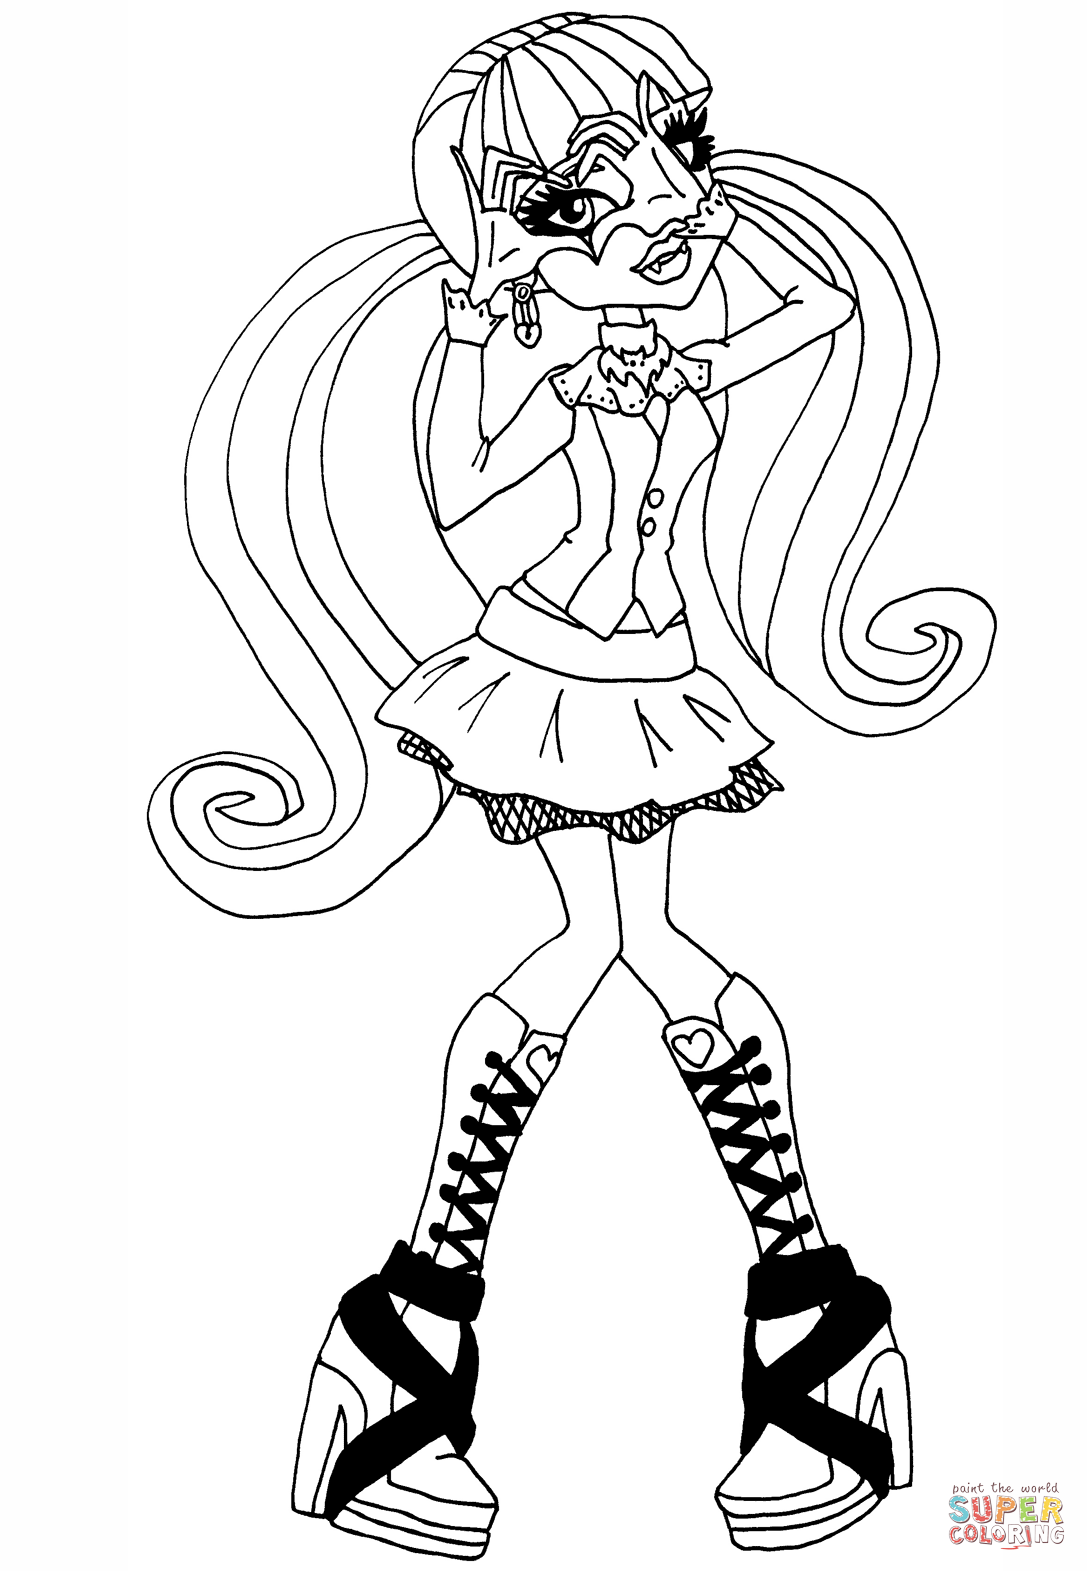 monster high coloring games monster high draculaura coloring page free printable coloring games monster high